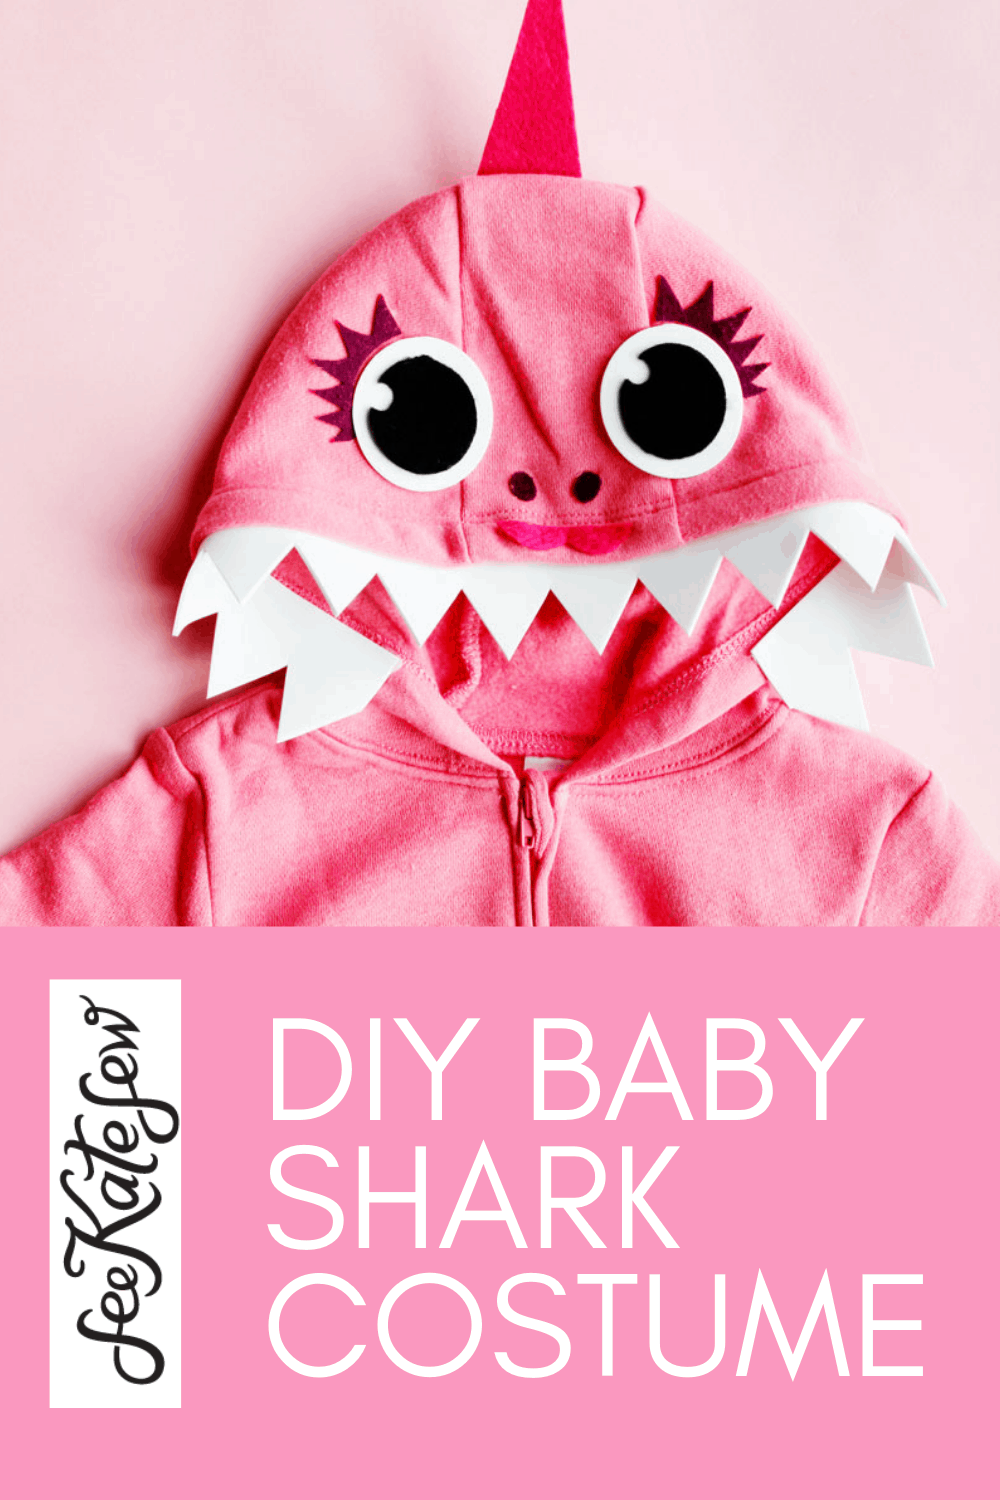 Make your own Baby Shark Costume